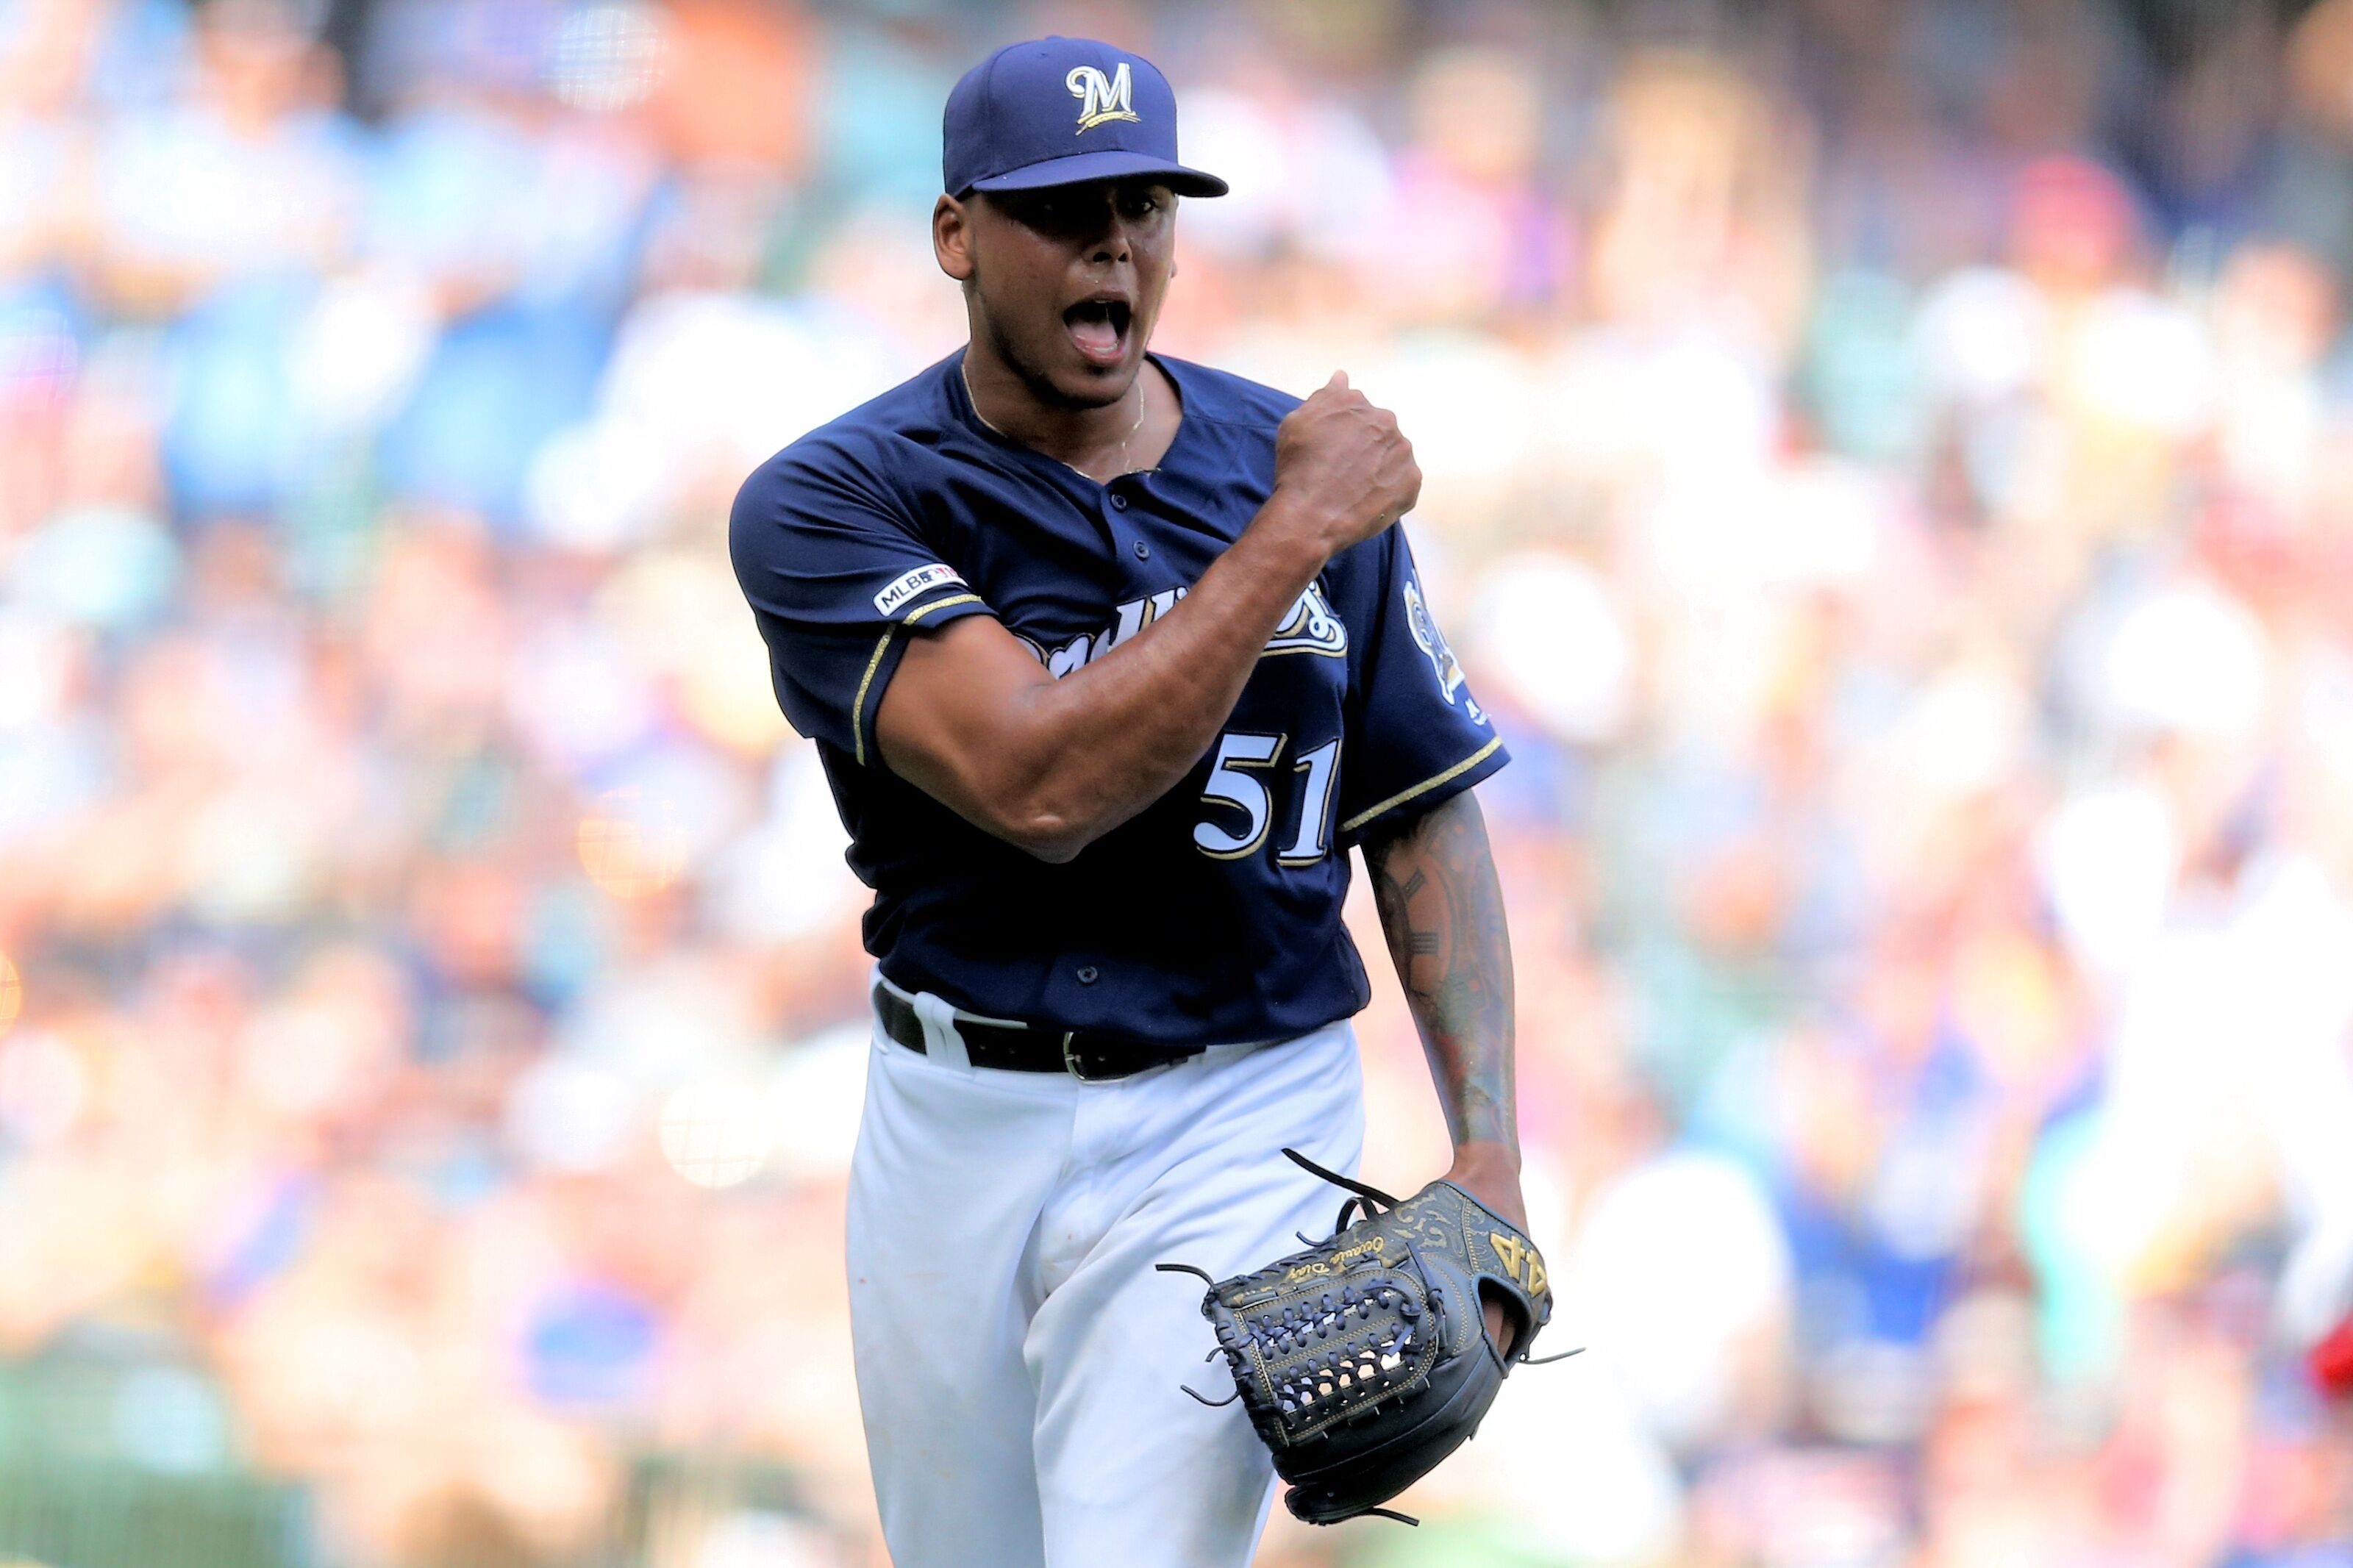 Milwaukee Brewers: How to handle Woodruff's absence